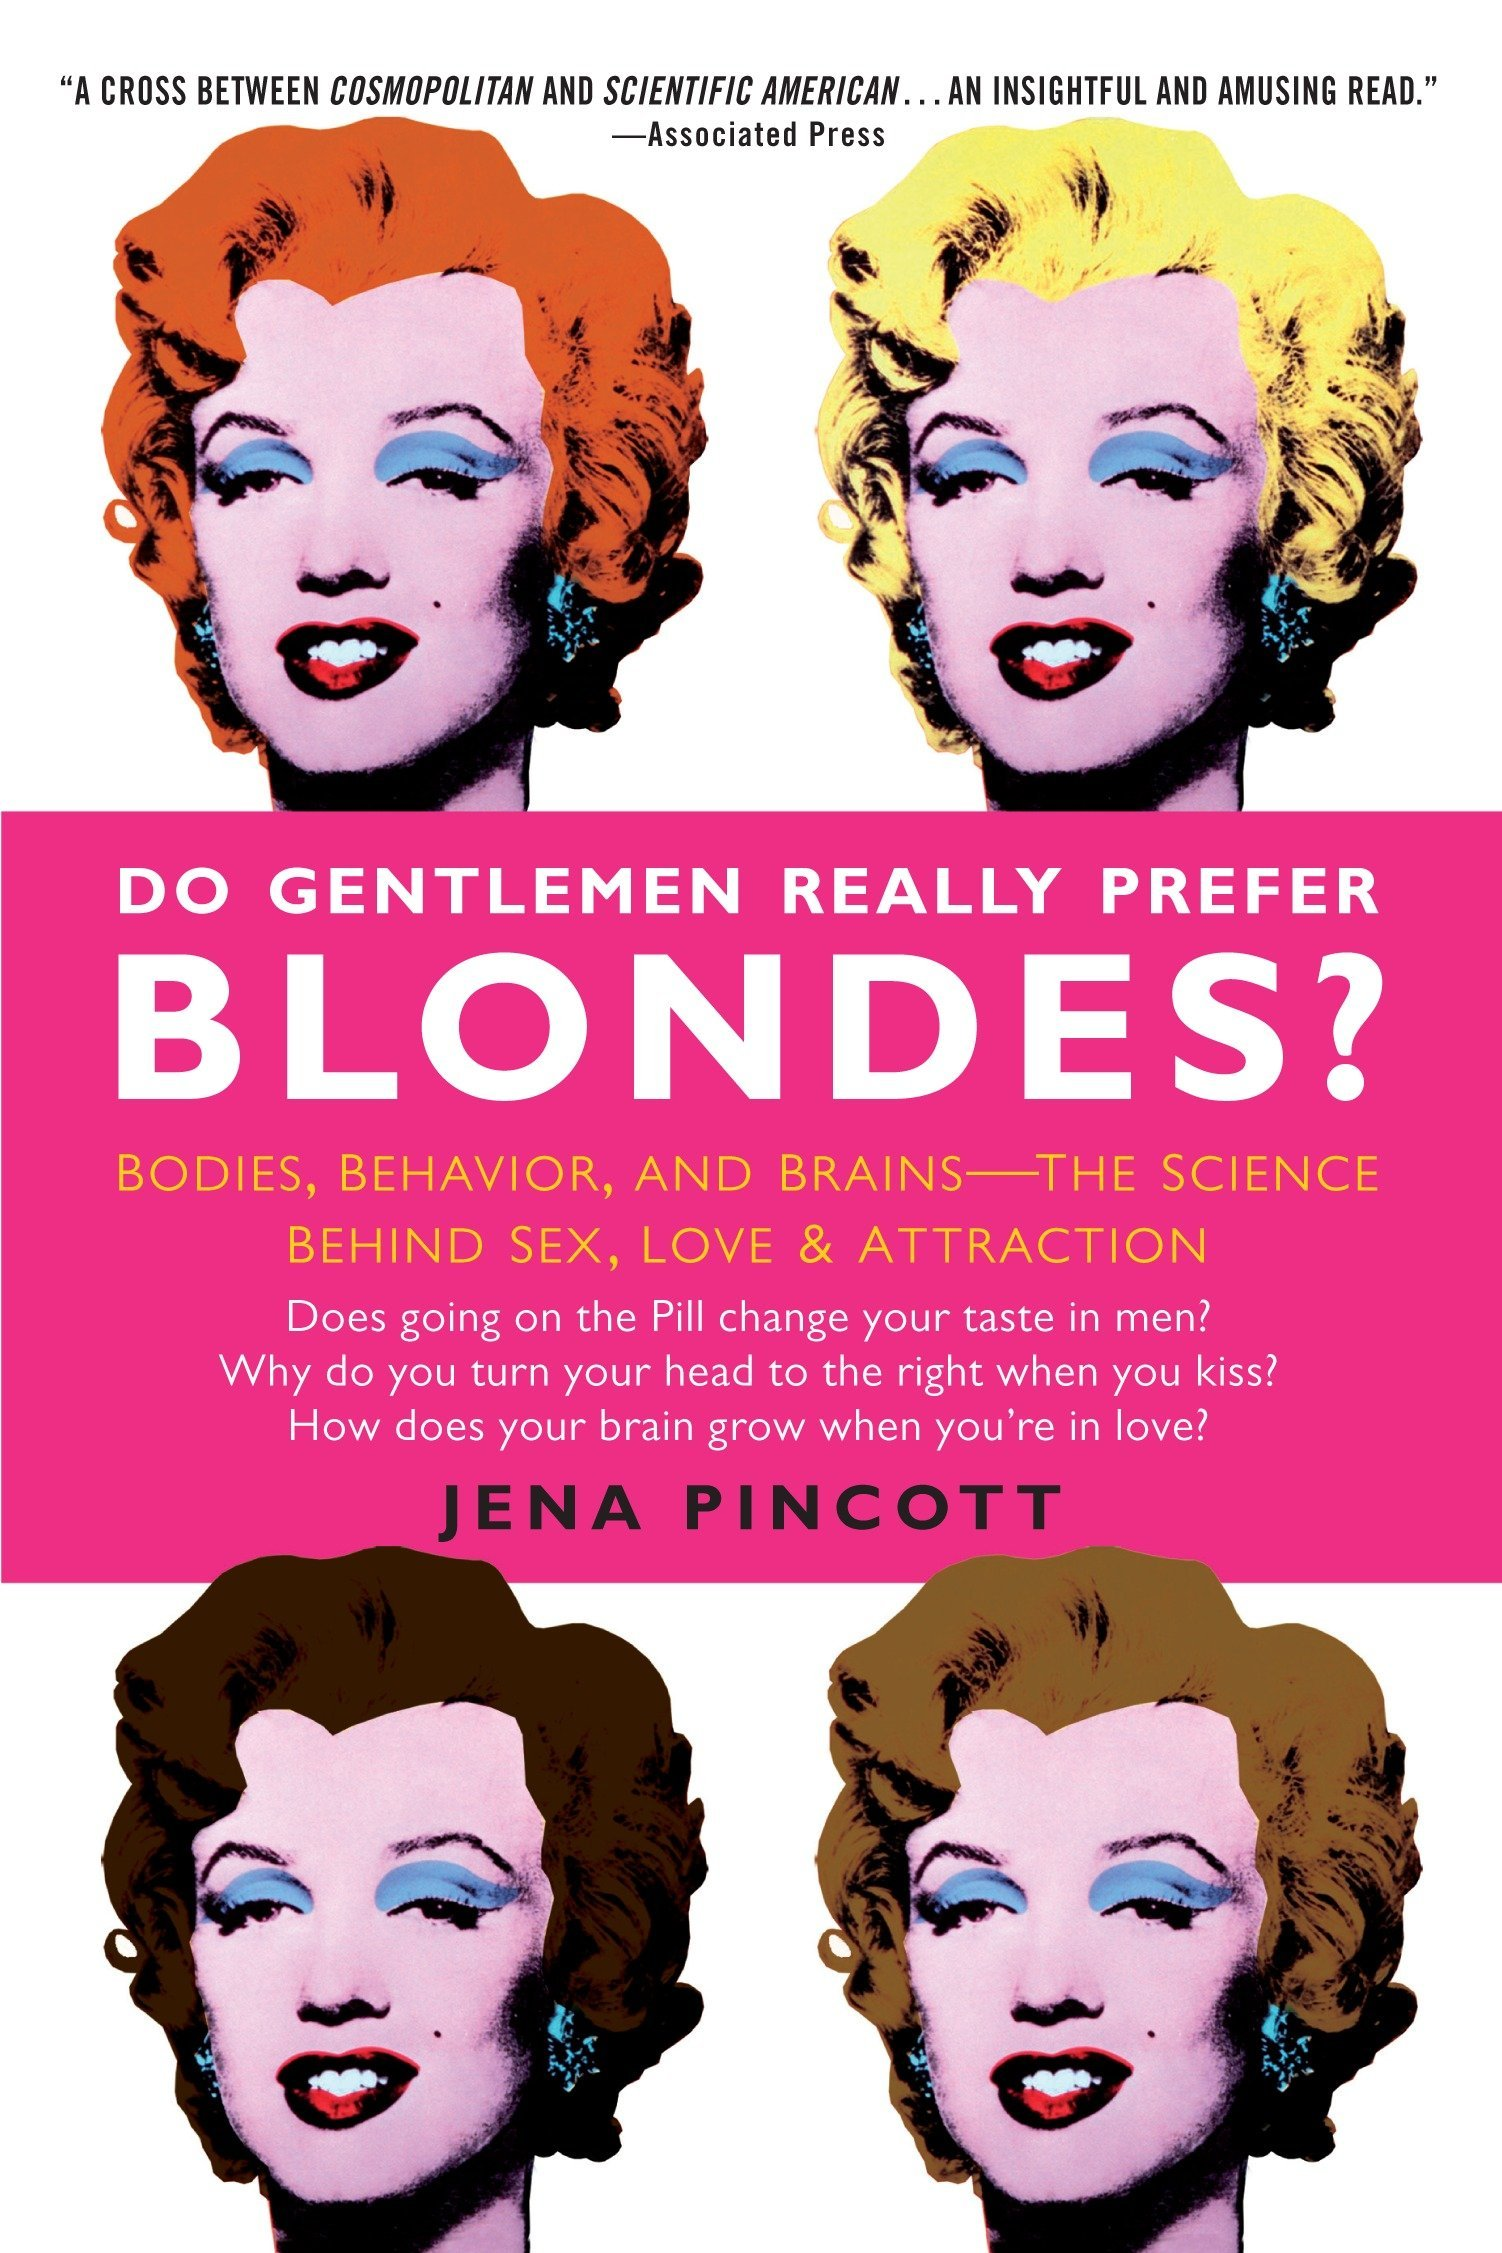 """Do Gentlemen Really Prefer Blondes?: The Science of Love, Sex & Attraction - """"""""Playfully written scientific anecdotes."""" – Publishers Weekly, starred reviewDoes the Pill change change your taste in men?Why do you turn your head to the right when you kiss?How does your brain grow when you're in love?If you've ever wondered how scientists measure love—or whether men really prefer blondes over brunettes—this smart, sexy book provides real answers to these and many other questions about our most baffling dating and mating behaviors. Based on the latest research in biology, evolutionary psychology, neuroscience, and cognitive science, Do Gentlemen Really Prefer Blondes? dares to explain the science behind sex—and opens a fascinating window on the intriguing phenomenon of love and attraction. Covering the areas of bodies, brains, and behavior, this eye-opening guide reveals the genetic, hormonal, and psychological secrets behind what makes us tick sexually. For example, do you know why a man's body chemistry and behavior change when he's in a committed relationship? And why, when he becomes a daddy, his testosterone level seems to plummet? And did you know…• When a couple first fall in love, their brains are indistinguishable from those of the clinically insane• You can tell a lot about a person's sexual chemistry just by looking at his or her hands• Your genes influence whose body odors you prefer• Being around breast-feeding women may increase a woman's sex driveViewed through the lens of science and instinct, your love life might be seen in a completely different way. Do Gentlemen Really Prefer Blondes? provides both an in-depth exploration into our sexual psyches—and fresh advice for men and women who want to discover the secrets of successful relationships."""